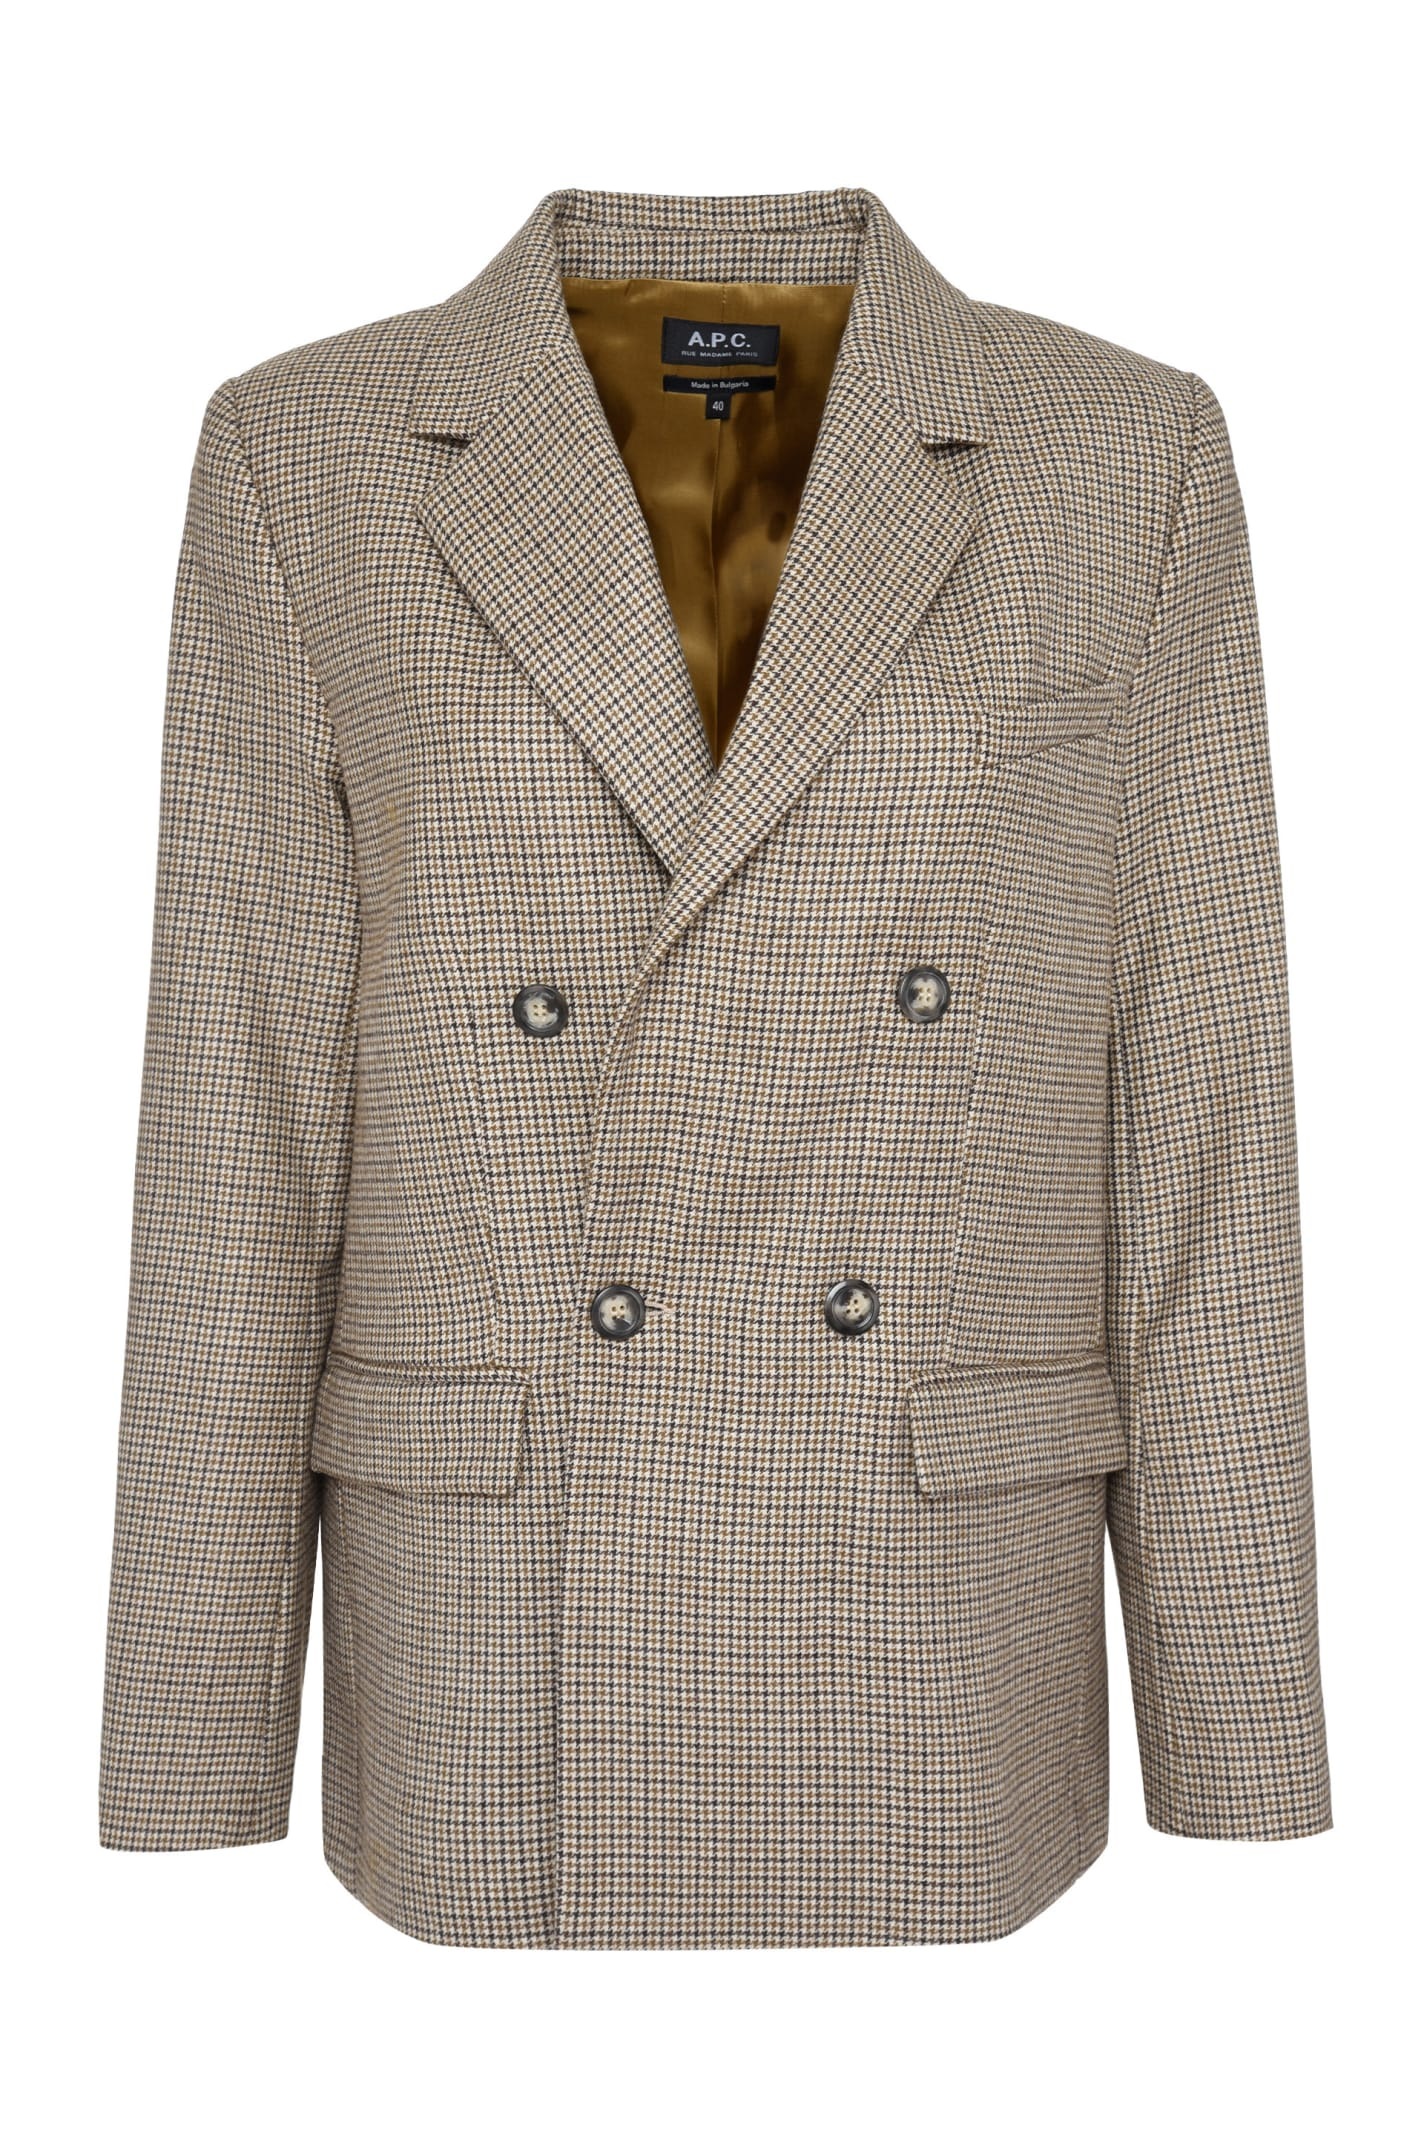 A.p.c. Blazers PRUNE CHECKED DOUBLE-BREASTED BLAZER